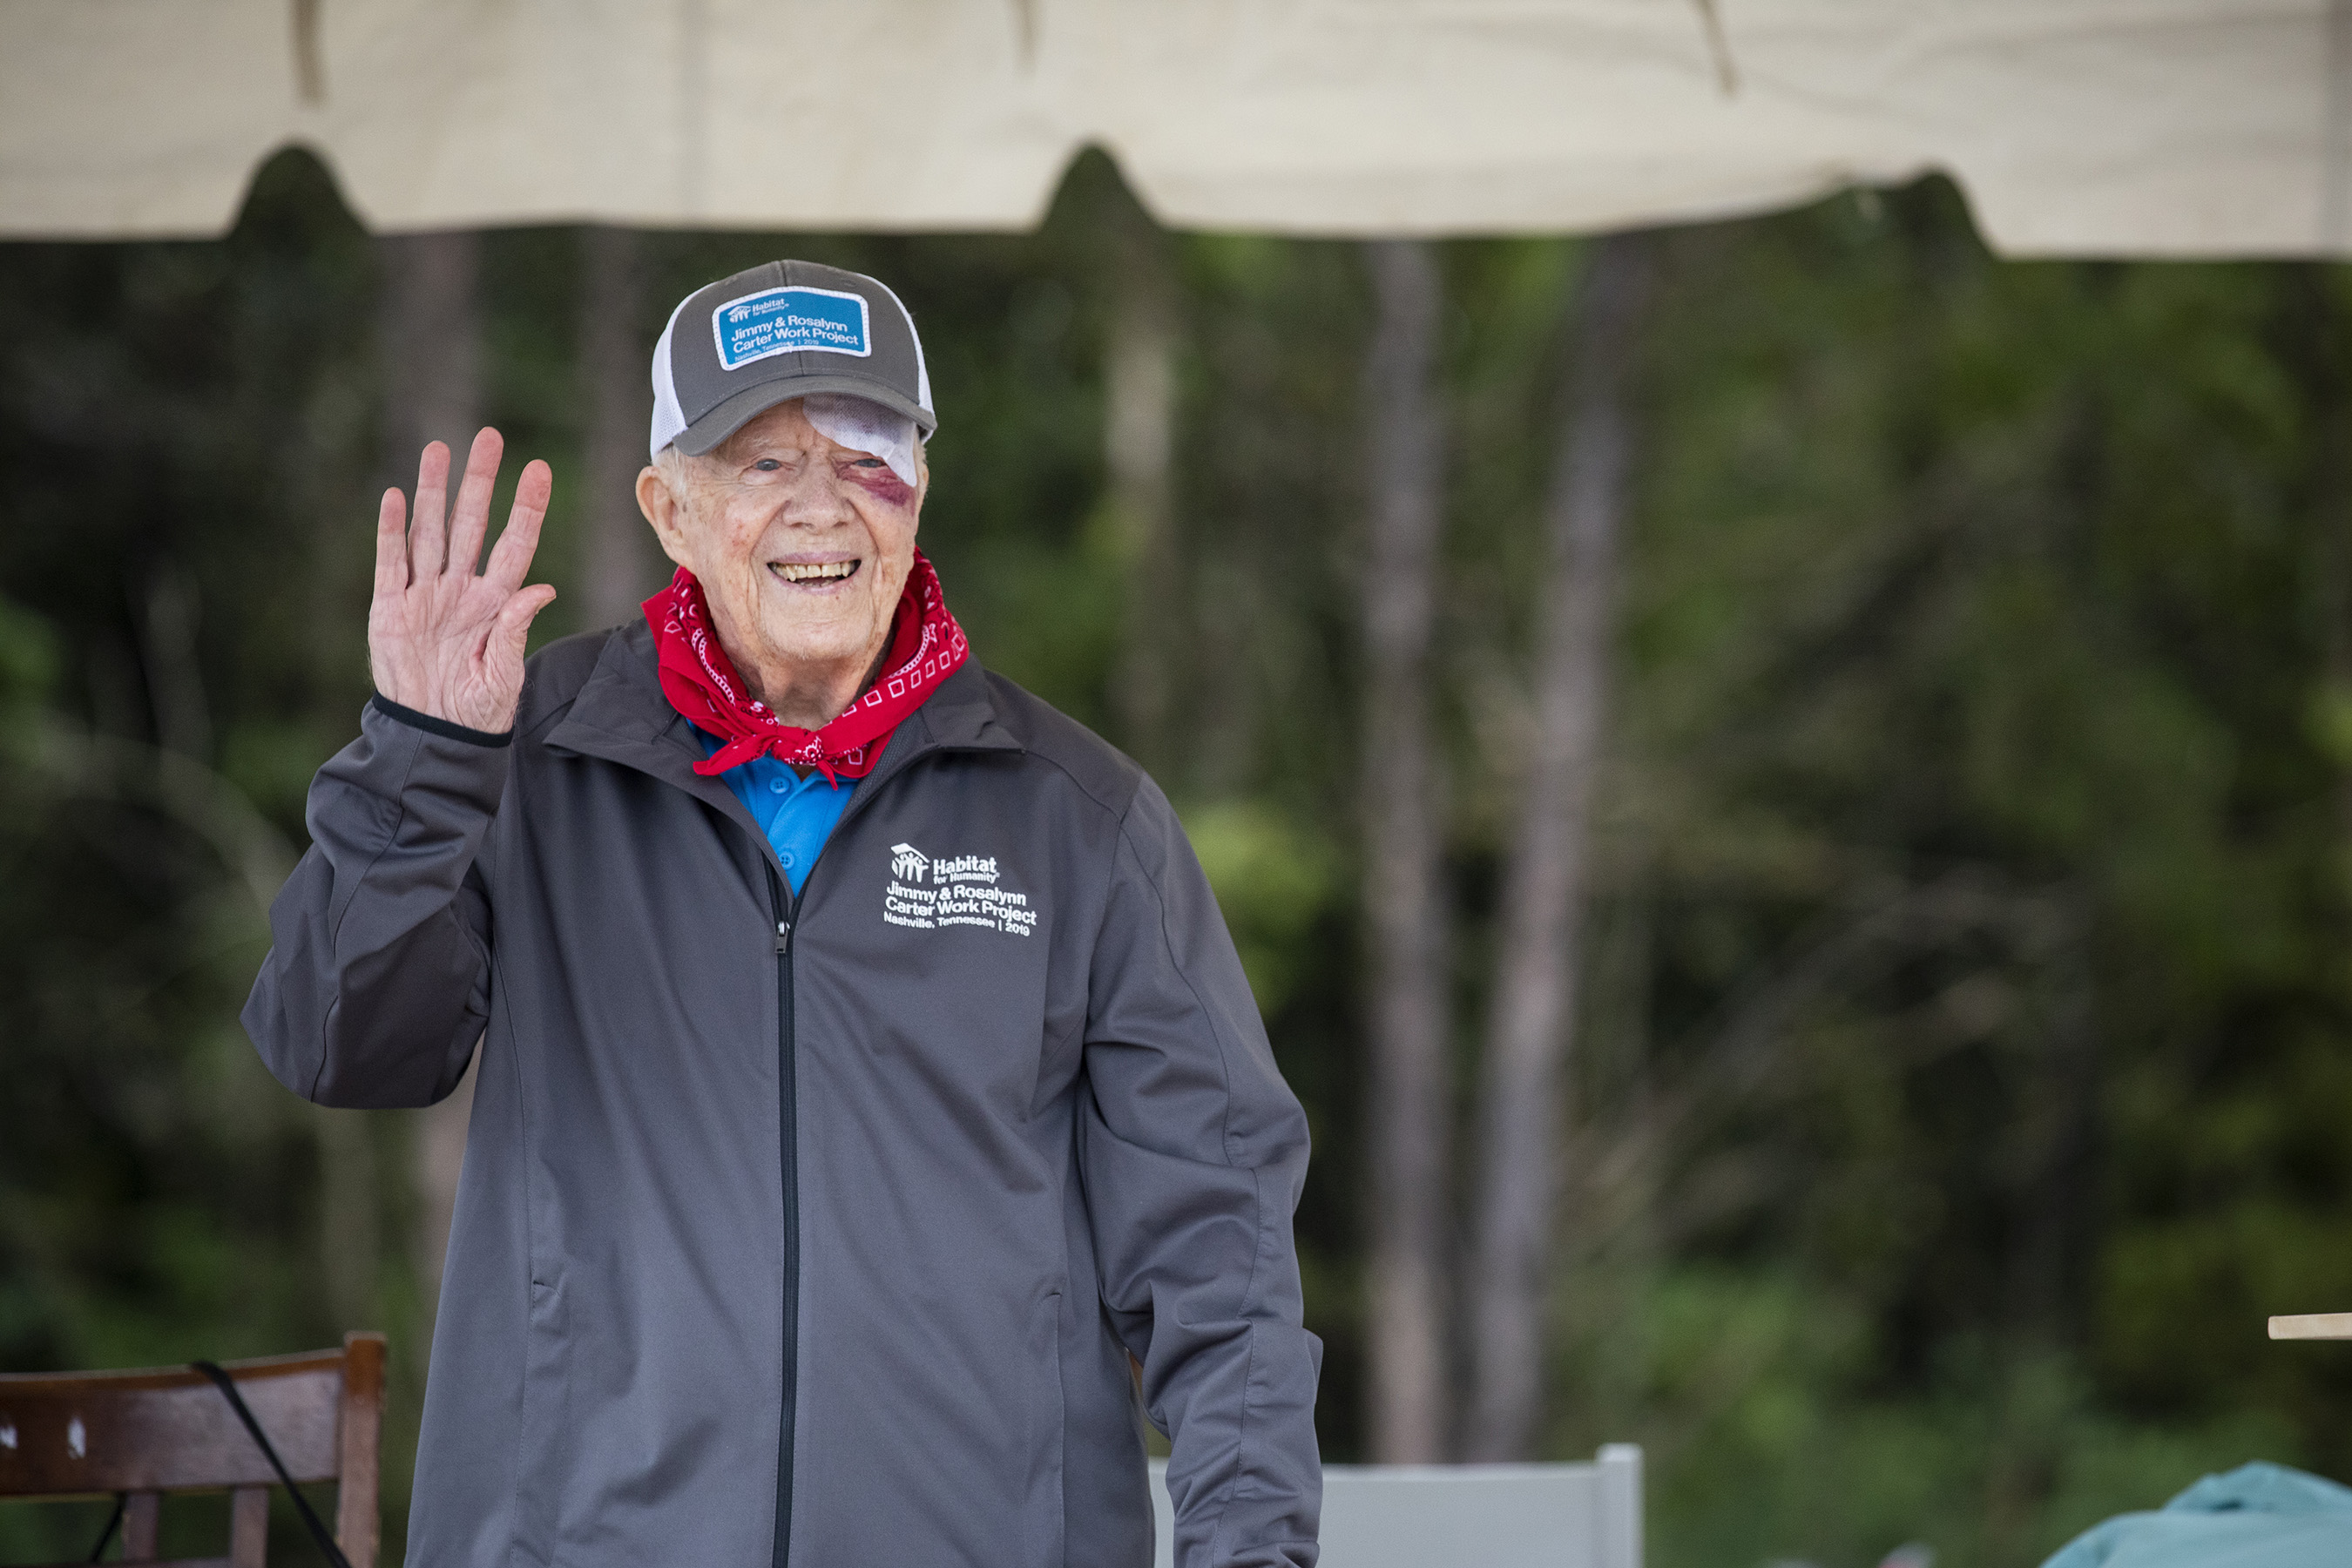 Former U.S. President Jimmy Carter begins work at a Habitat for Humanity build site in Nashville on Monday, Oct. 7. The former president has volunteered alongside his wife, former First Lady Rosalynn Carter, with Habitat since 1984.